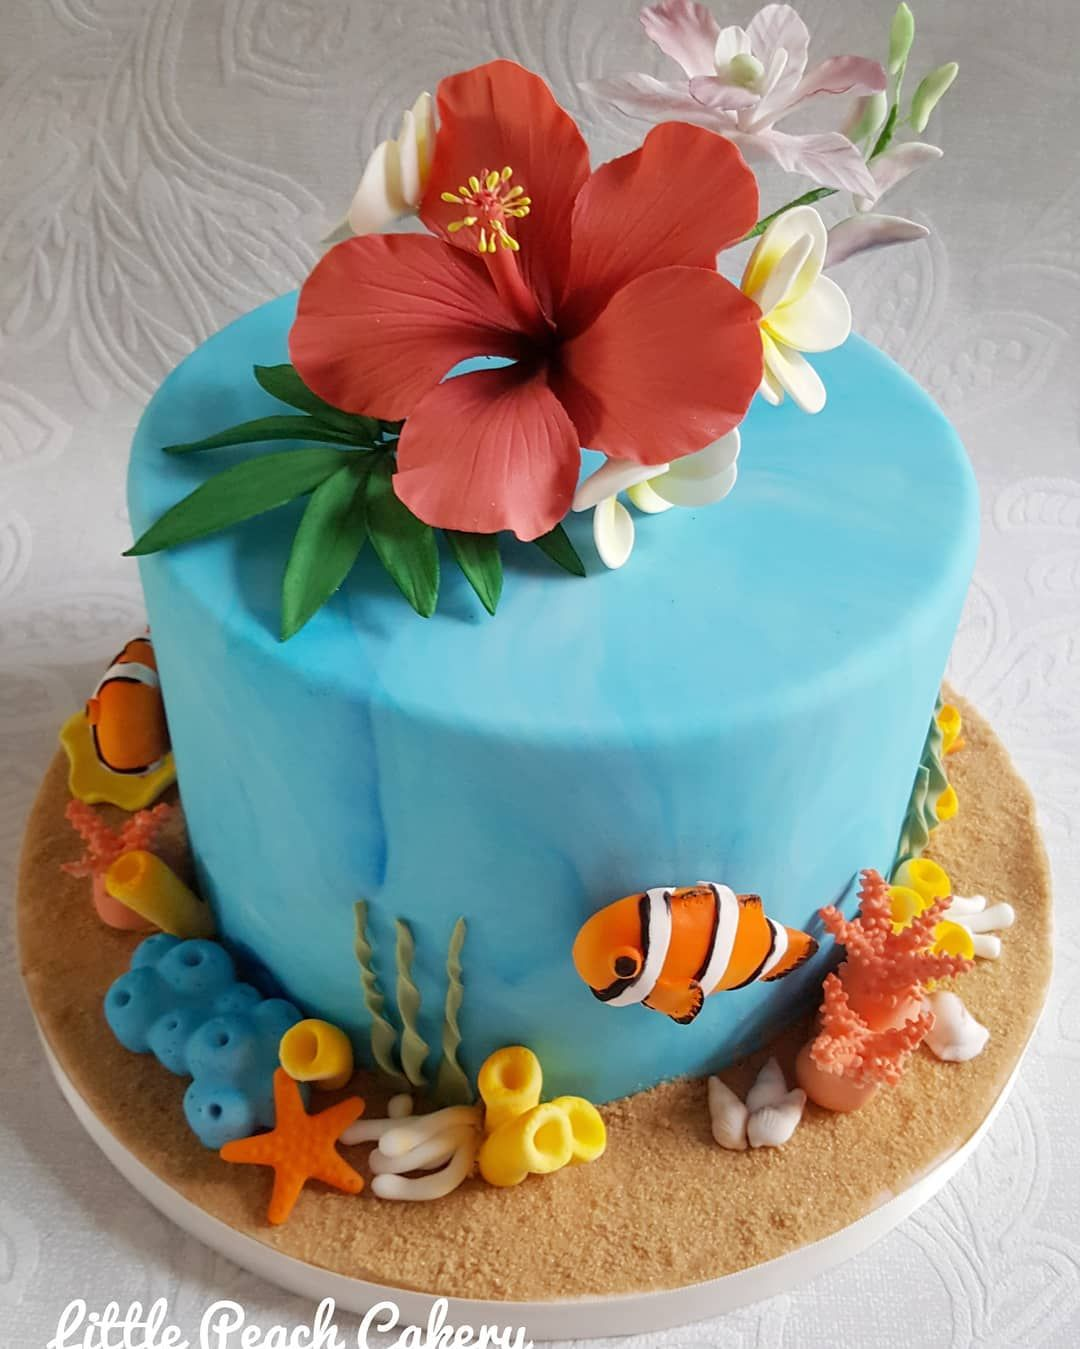 Coral Reef And Tropical Flowers Sugarcraftclass Thefairycakery